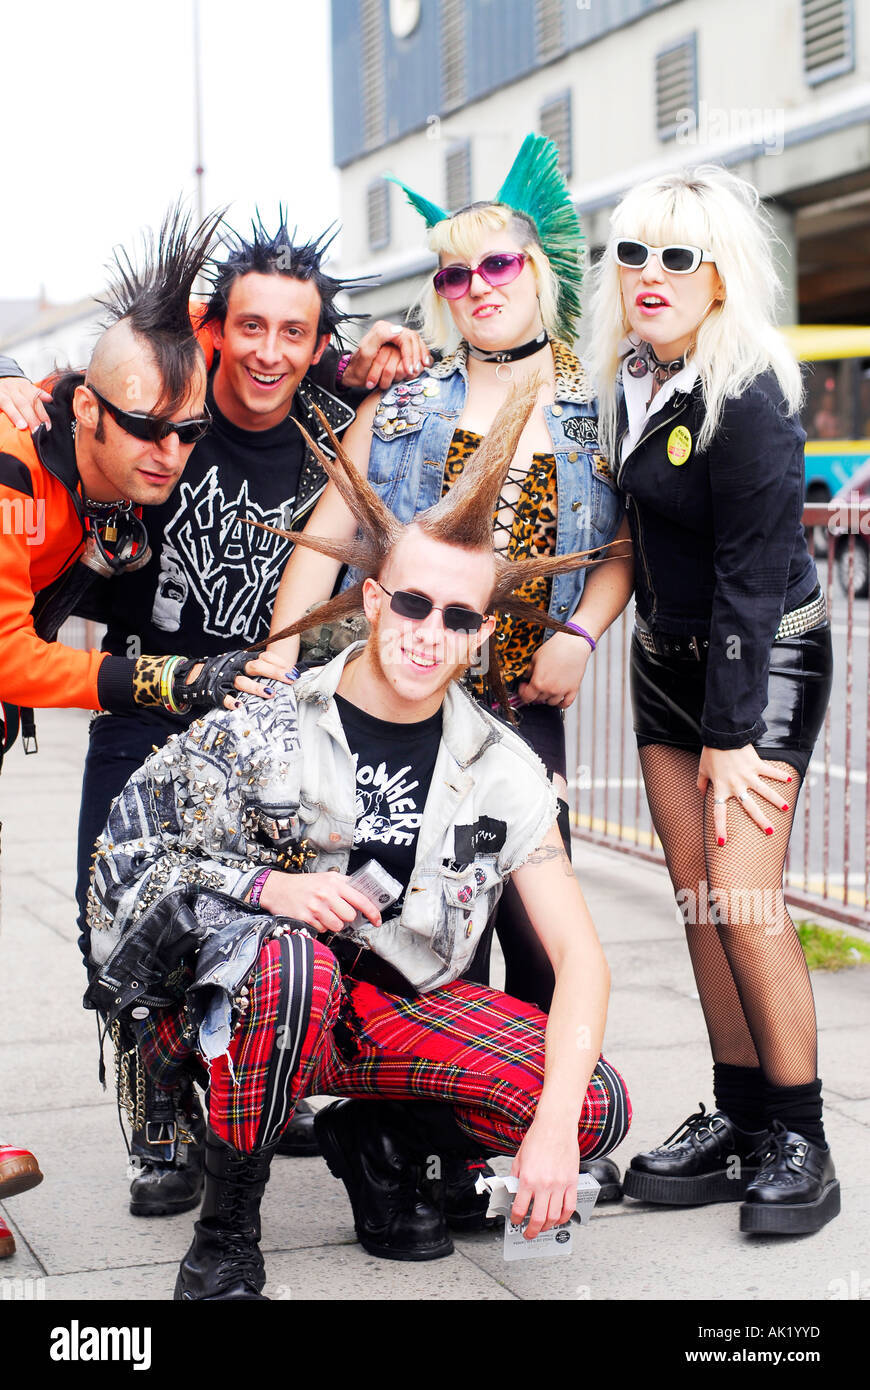 Punk rockers arrive for the Wasted Festival in Blackpool,England - Stock Image